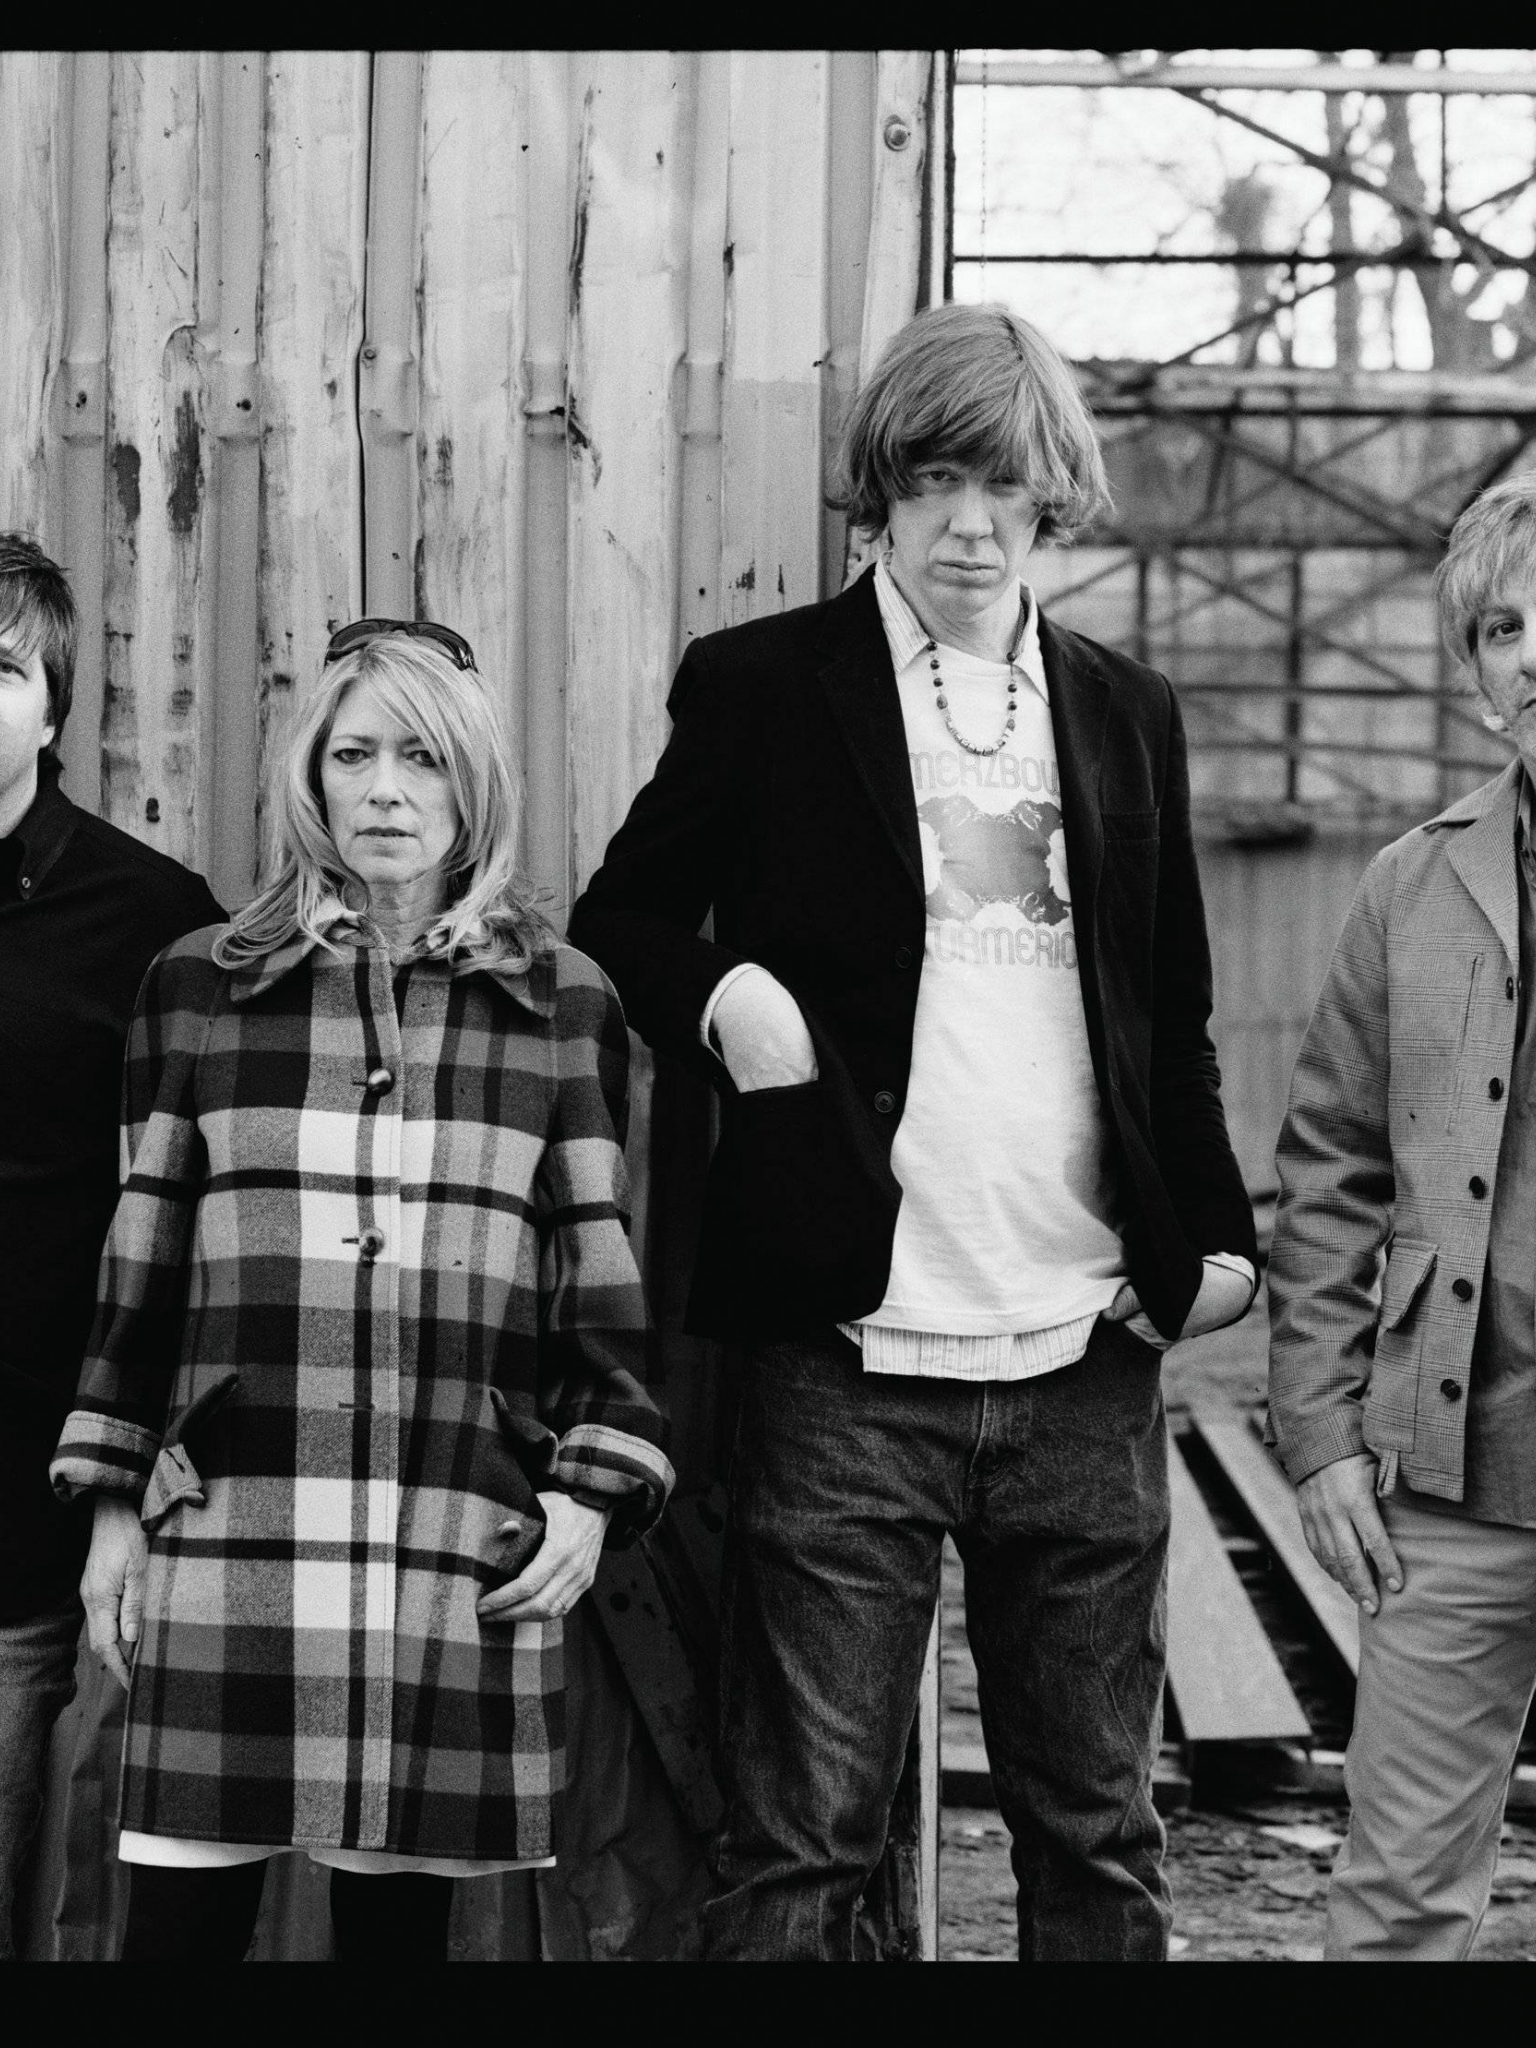 3000x2219px Sonic Youth Wallpaper Wallpapersafari